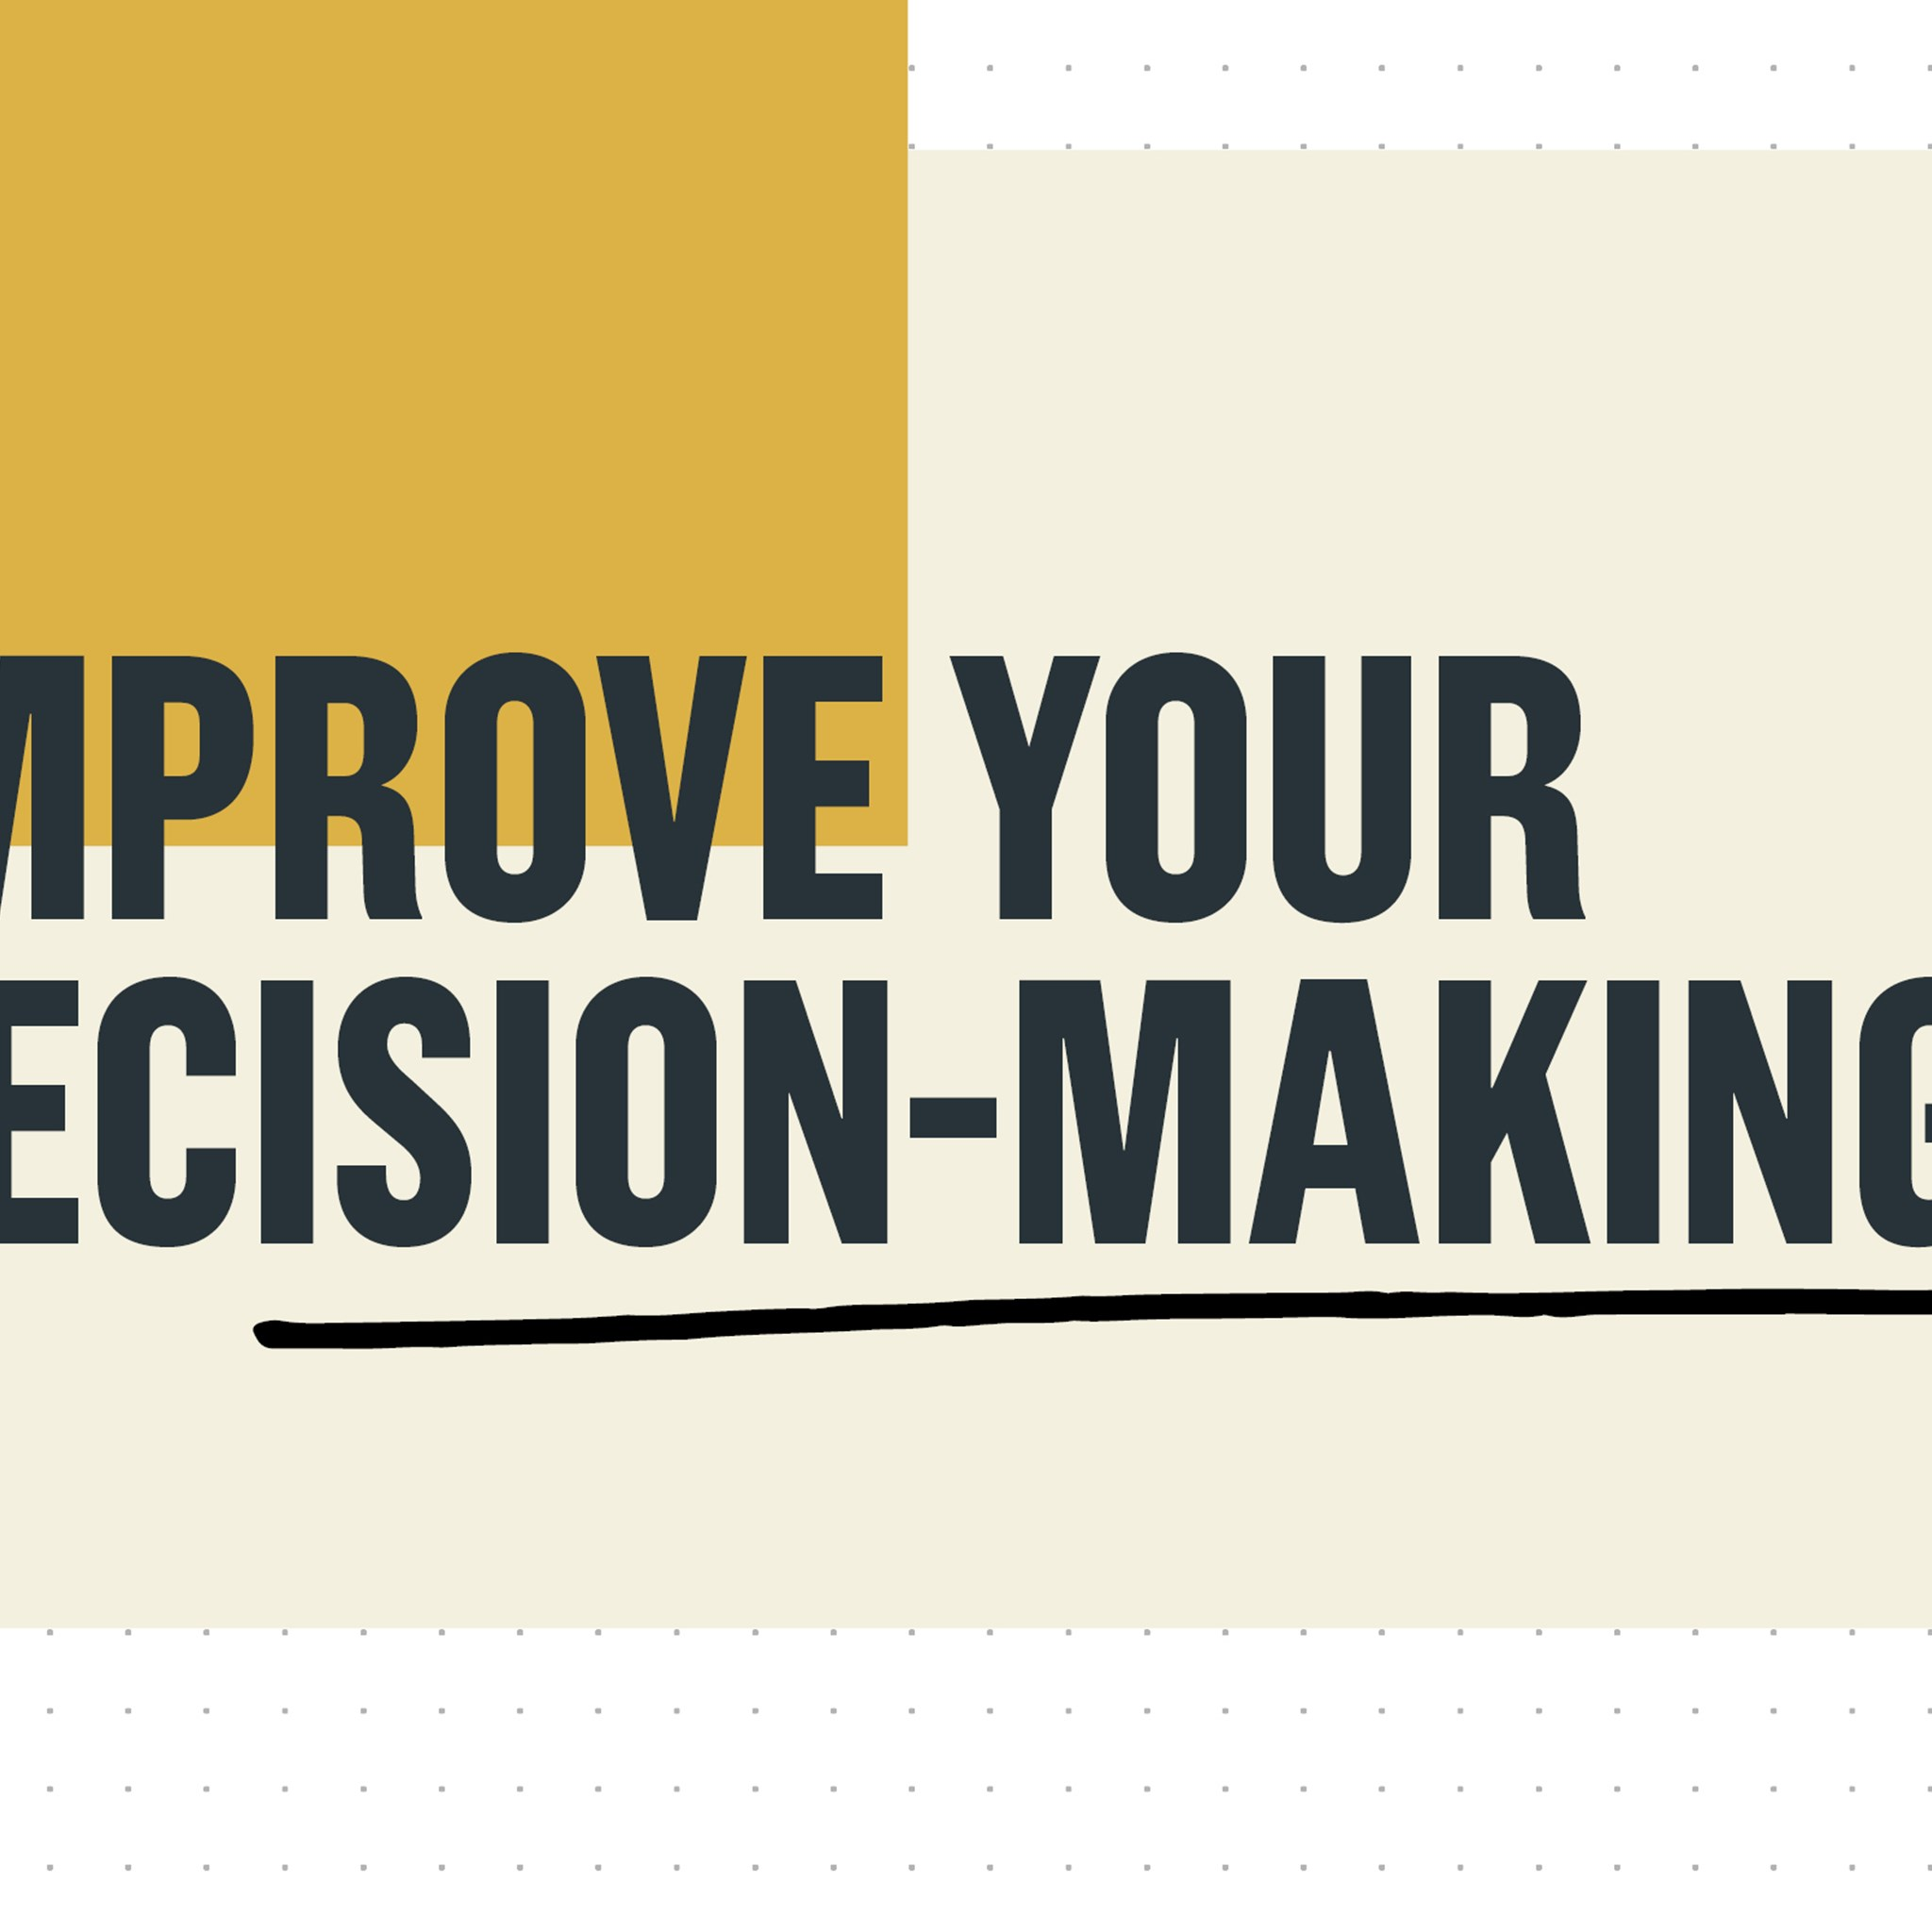 Steer and improve your company's decision-making process